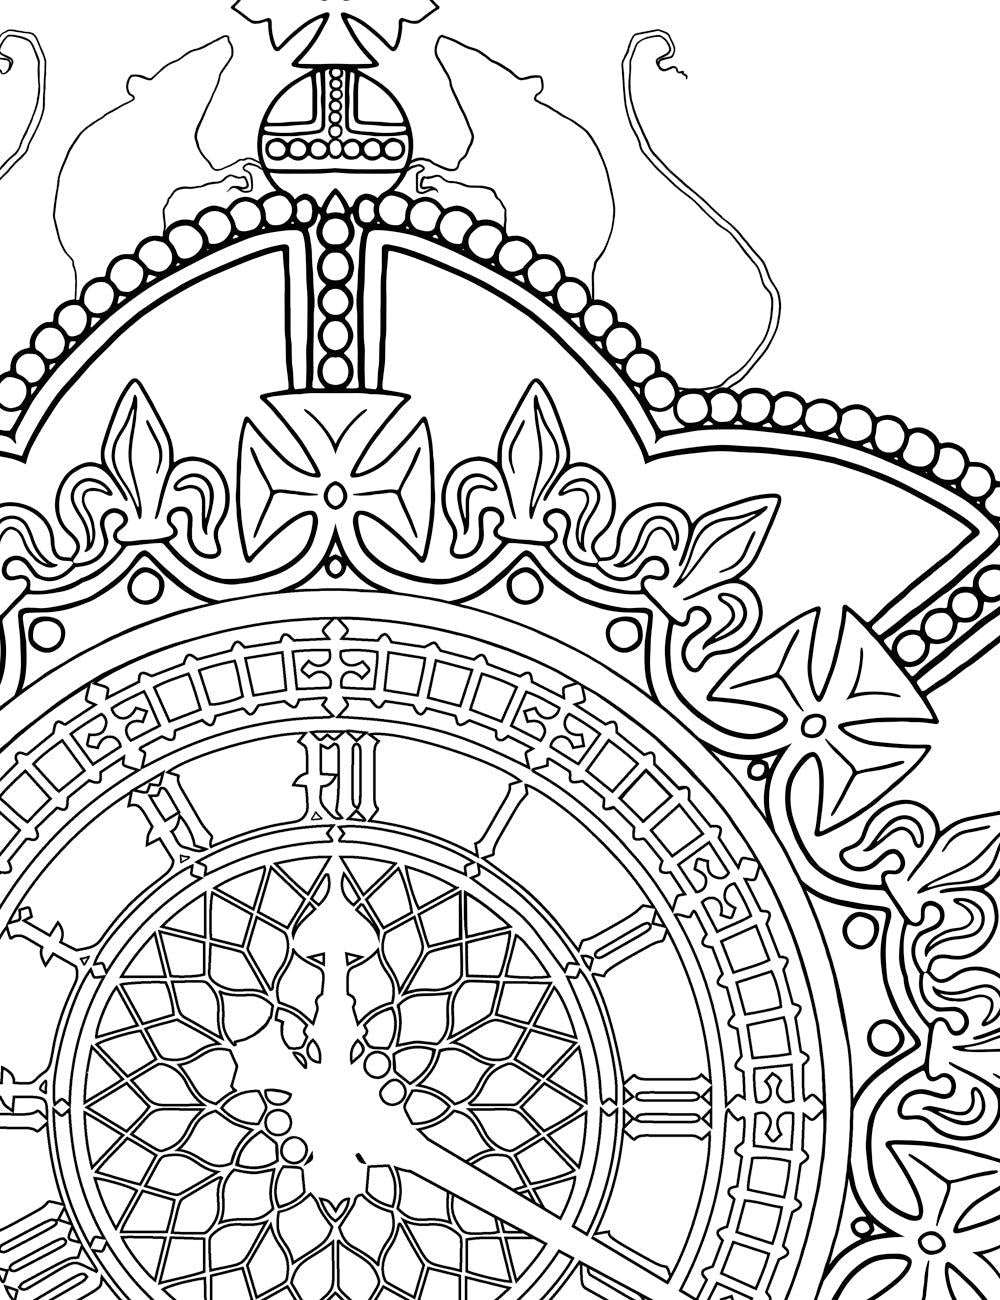 Asylum Coloring Book Page: Clock Crowns